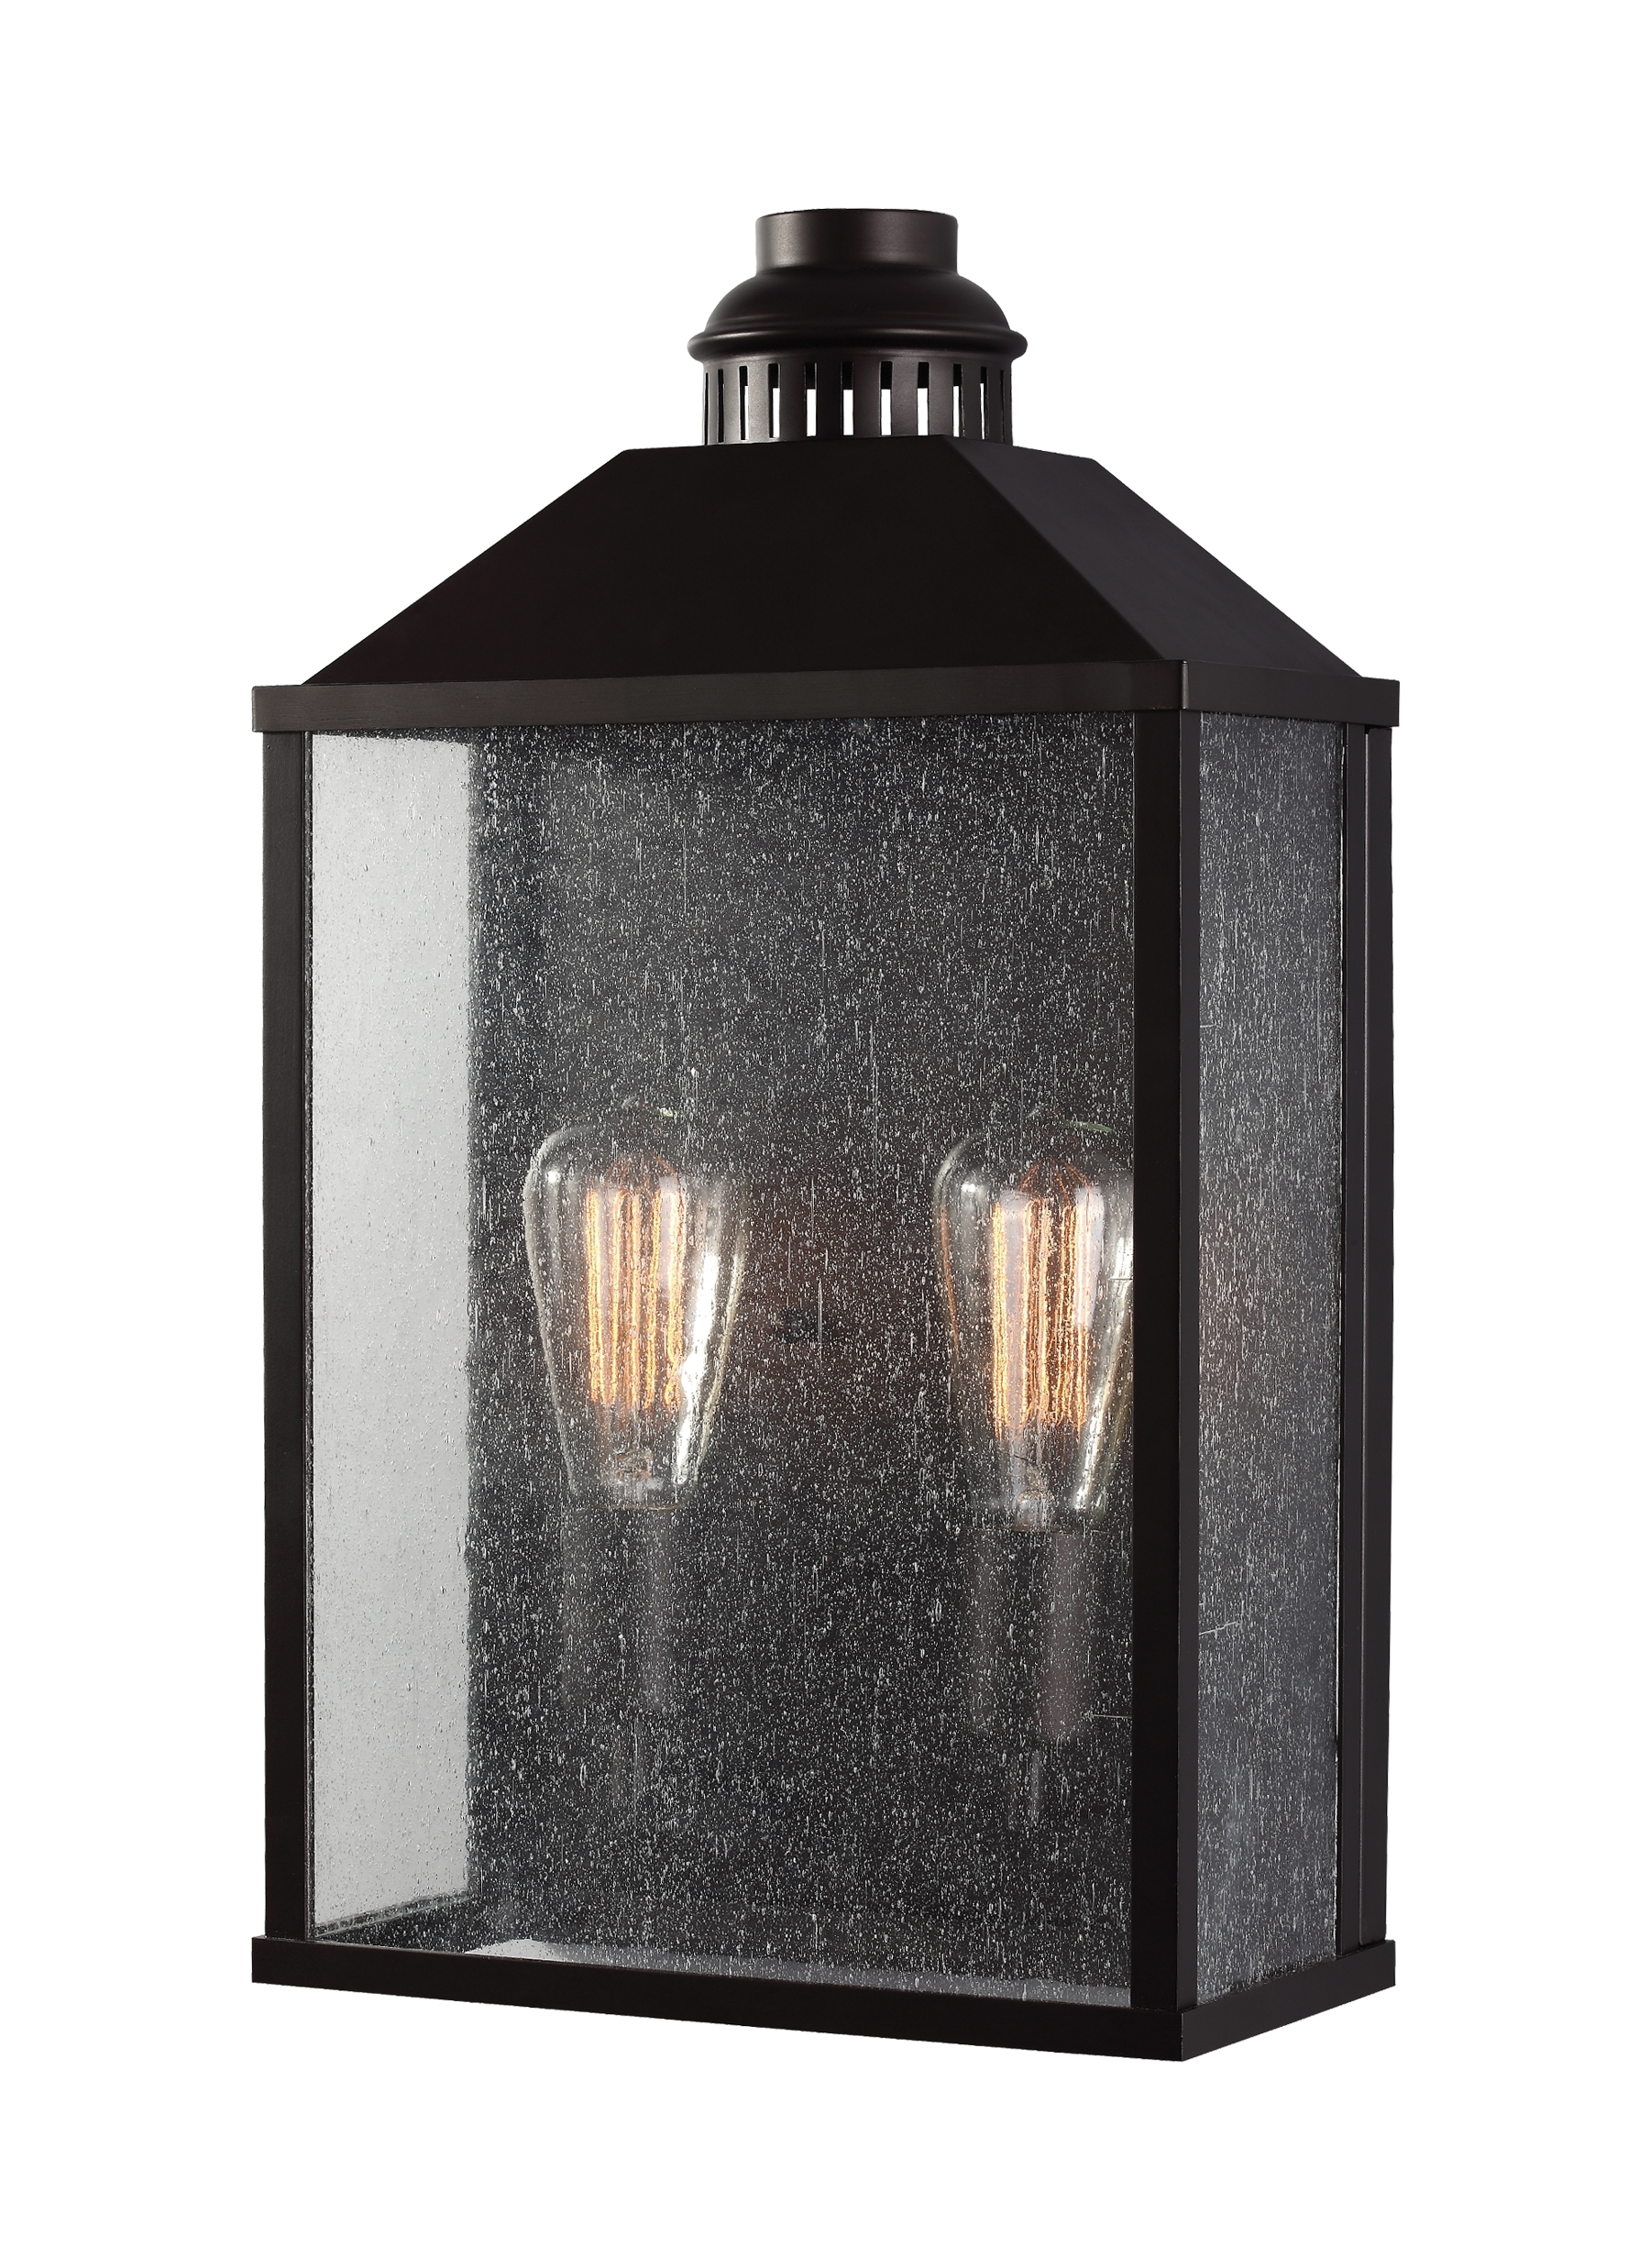 Ol18011Orb,2 – Light Outdoor Wall Sconce,oil Rubbed Bronze Regarding Most Current Outdoor Oil Lanterns For Patio (Gallery 5 of 20)